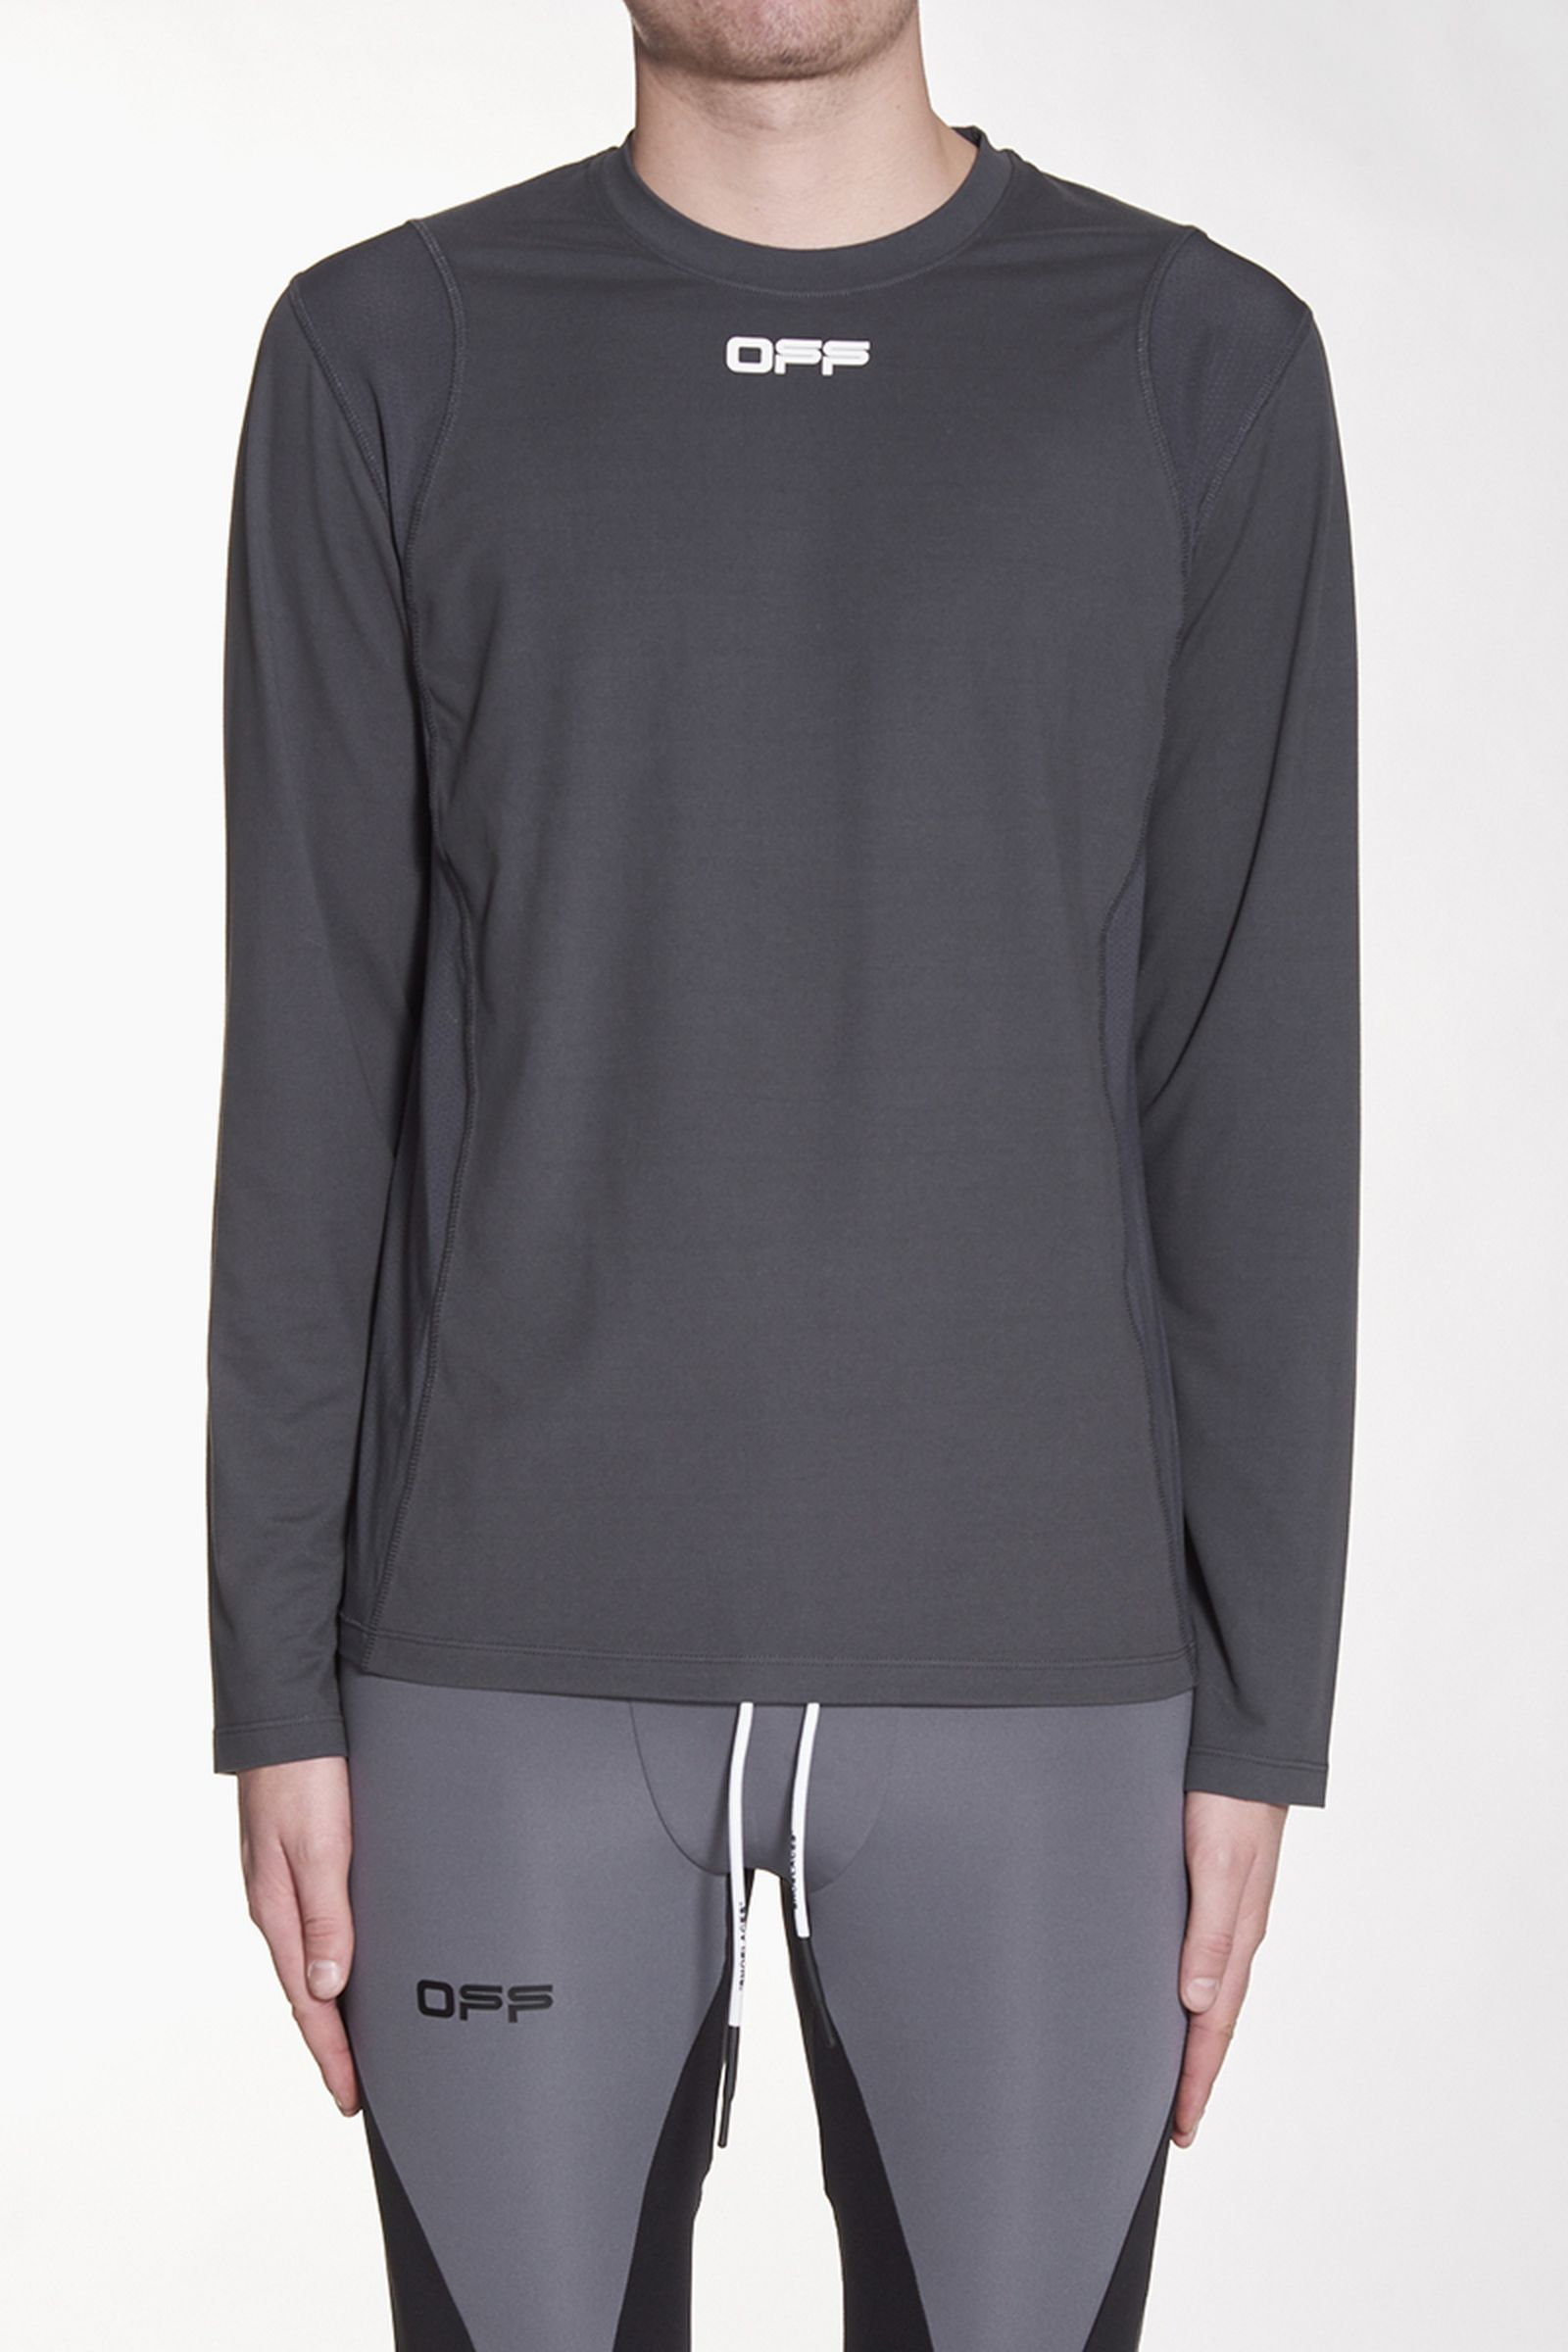 17off-white-activewear-off-active